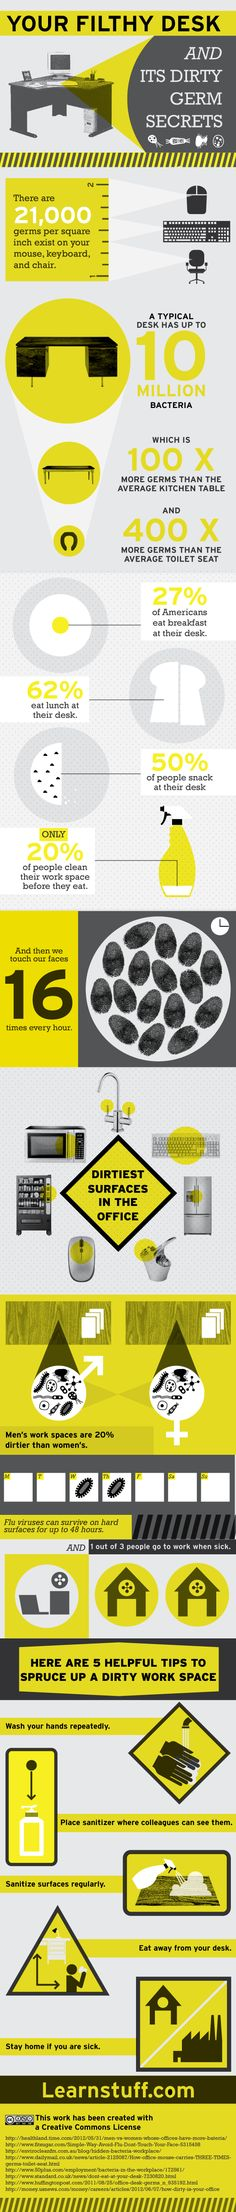 Fresh on IGM > #Office #Hygiene Facts: You will be amazed by the magnitude of germ armies lurking for a hole in your immune system. 5 basic hygiene rules are suggested to help you stay intact.  > http://infographicsmania.com/office-hygiene-facts/